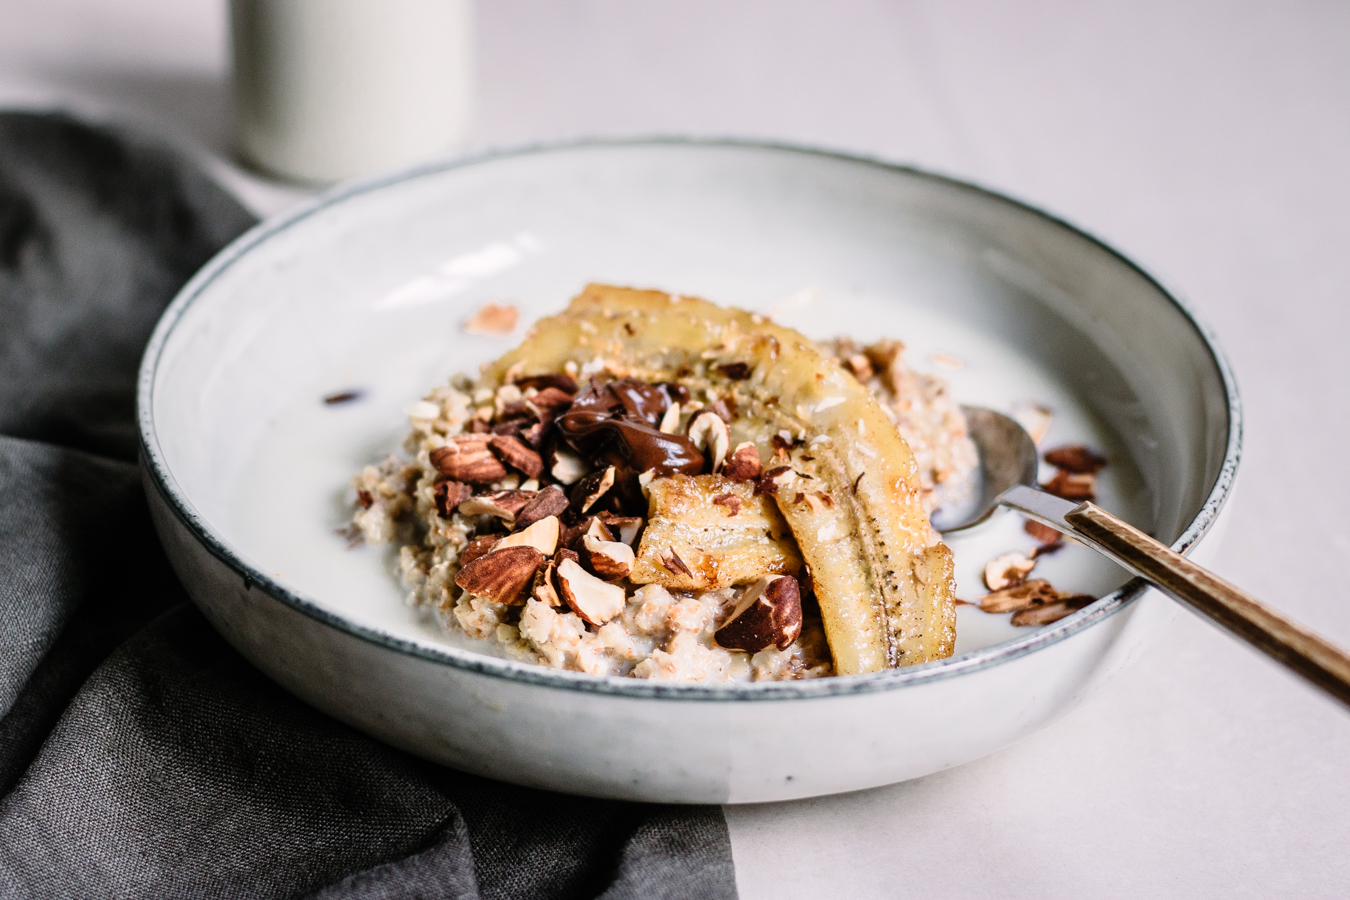 Banana split Oatmeal with roasted almonds